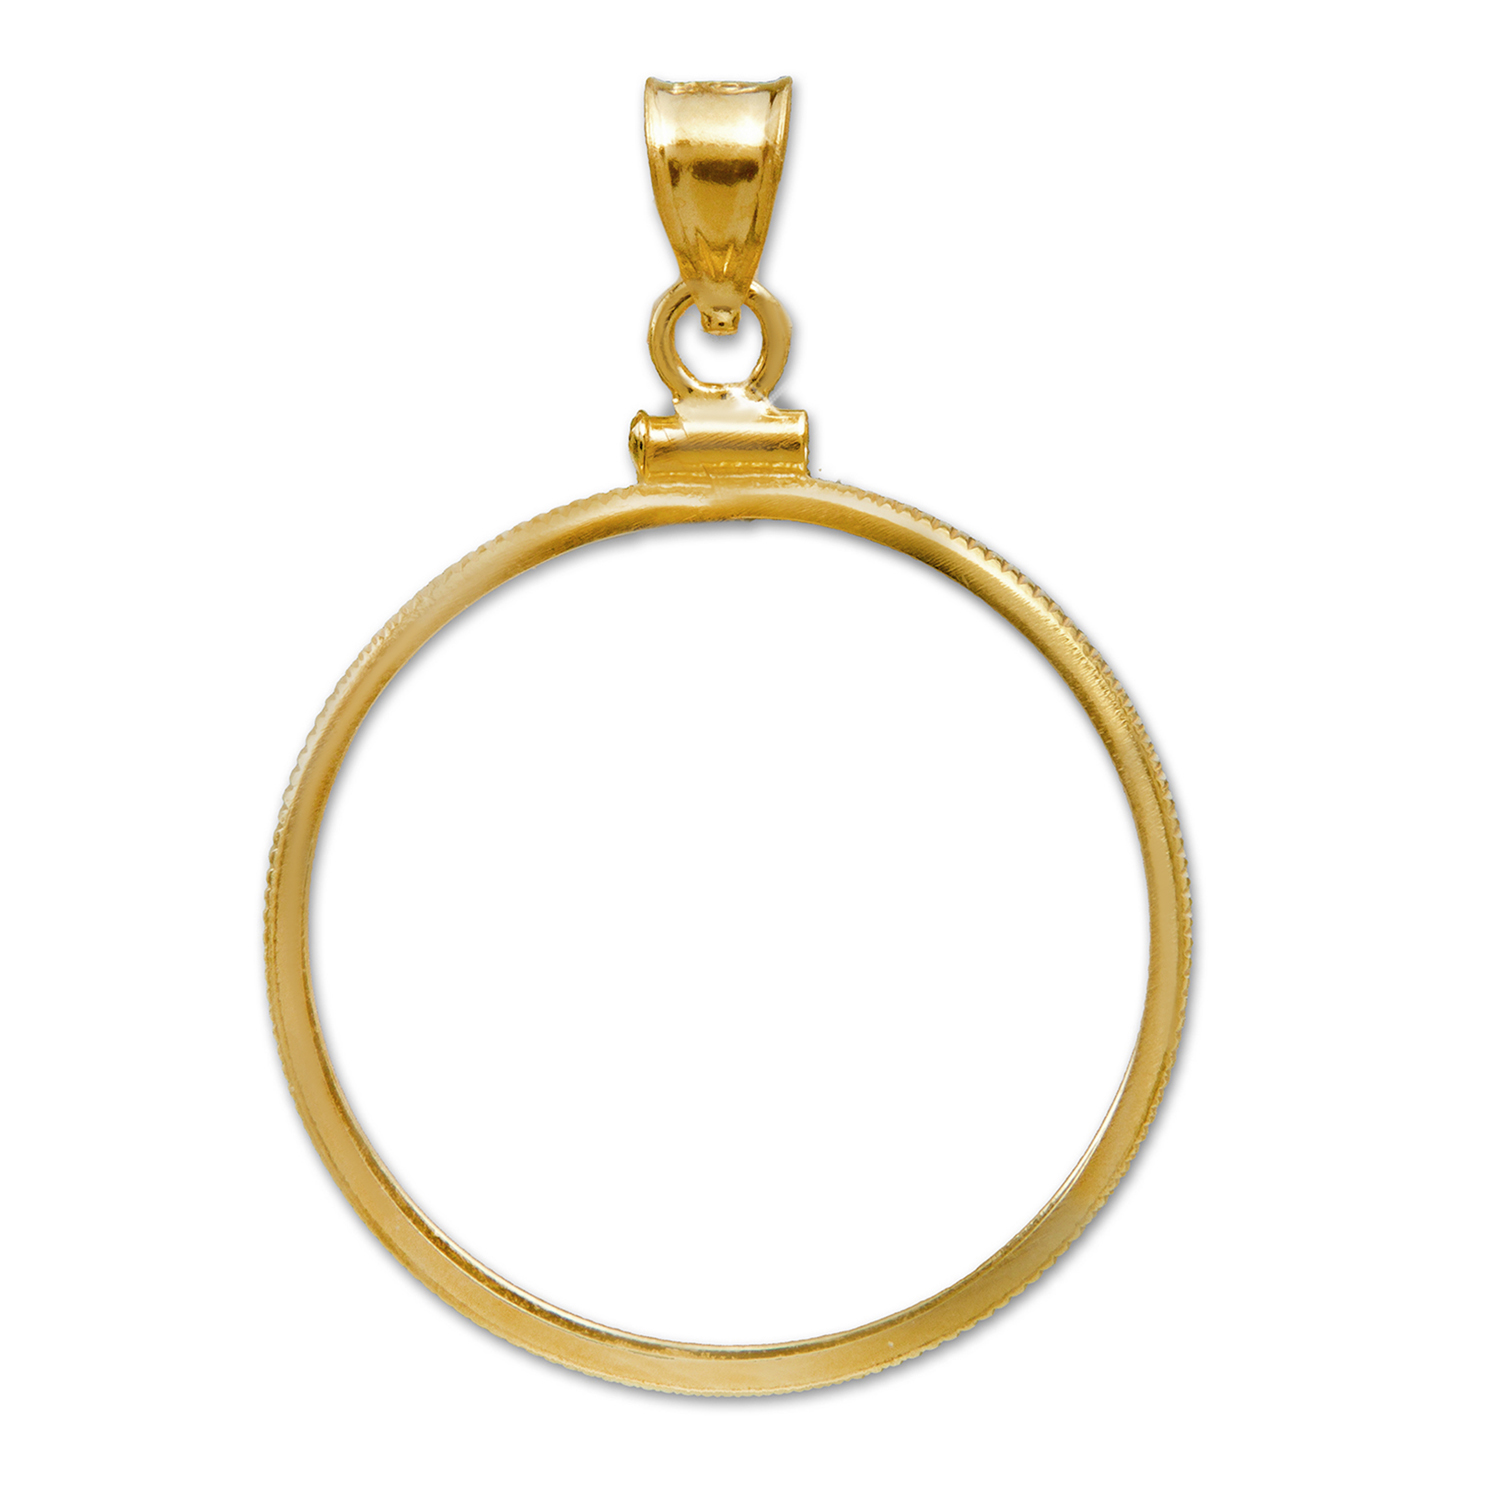 14K Gold Screw-Top Plain-Front Coin Bezel ($5 U.S. Gold)